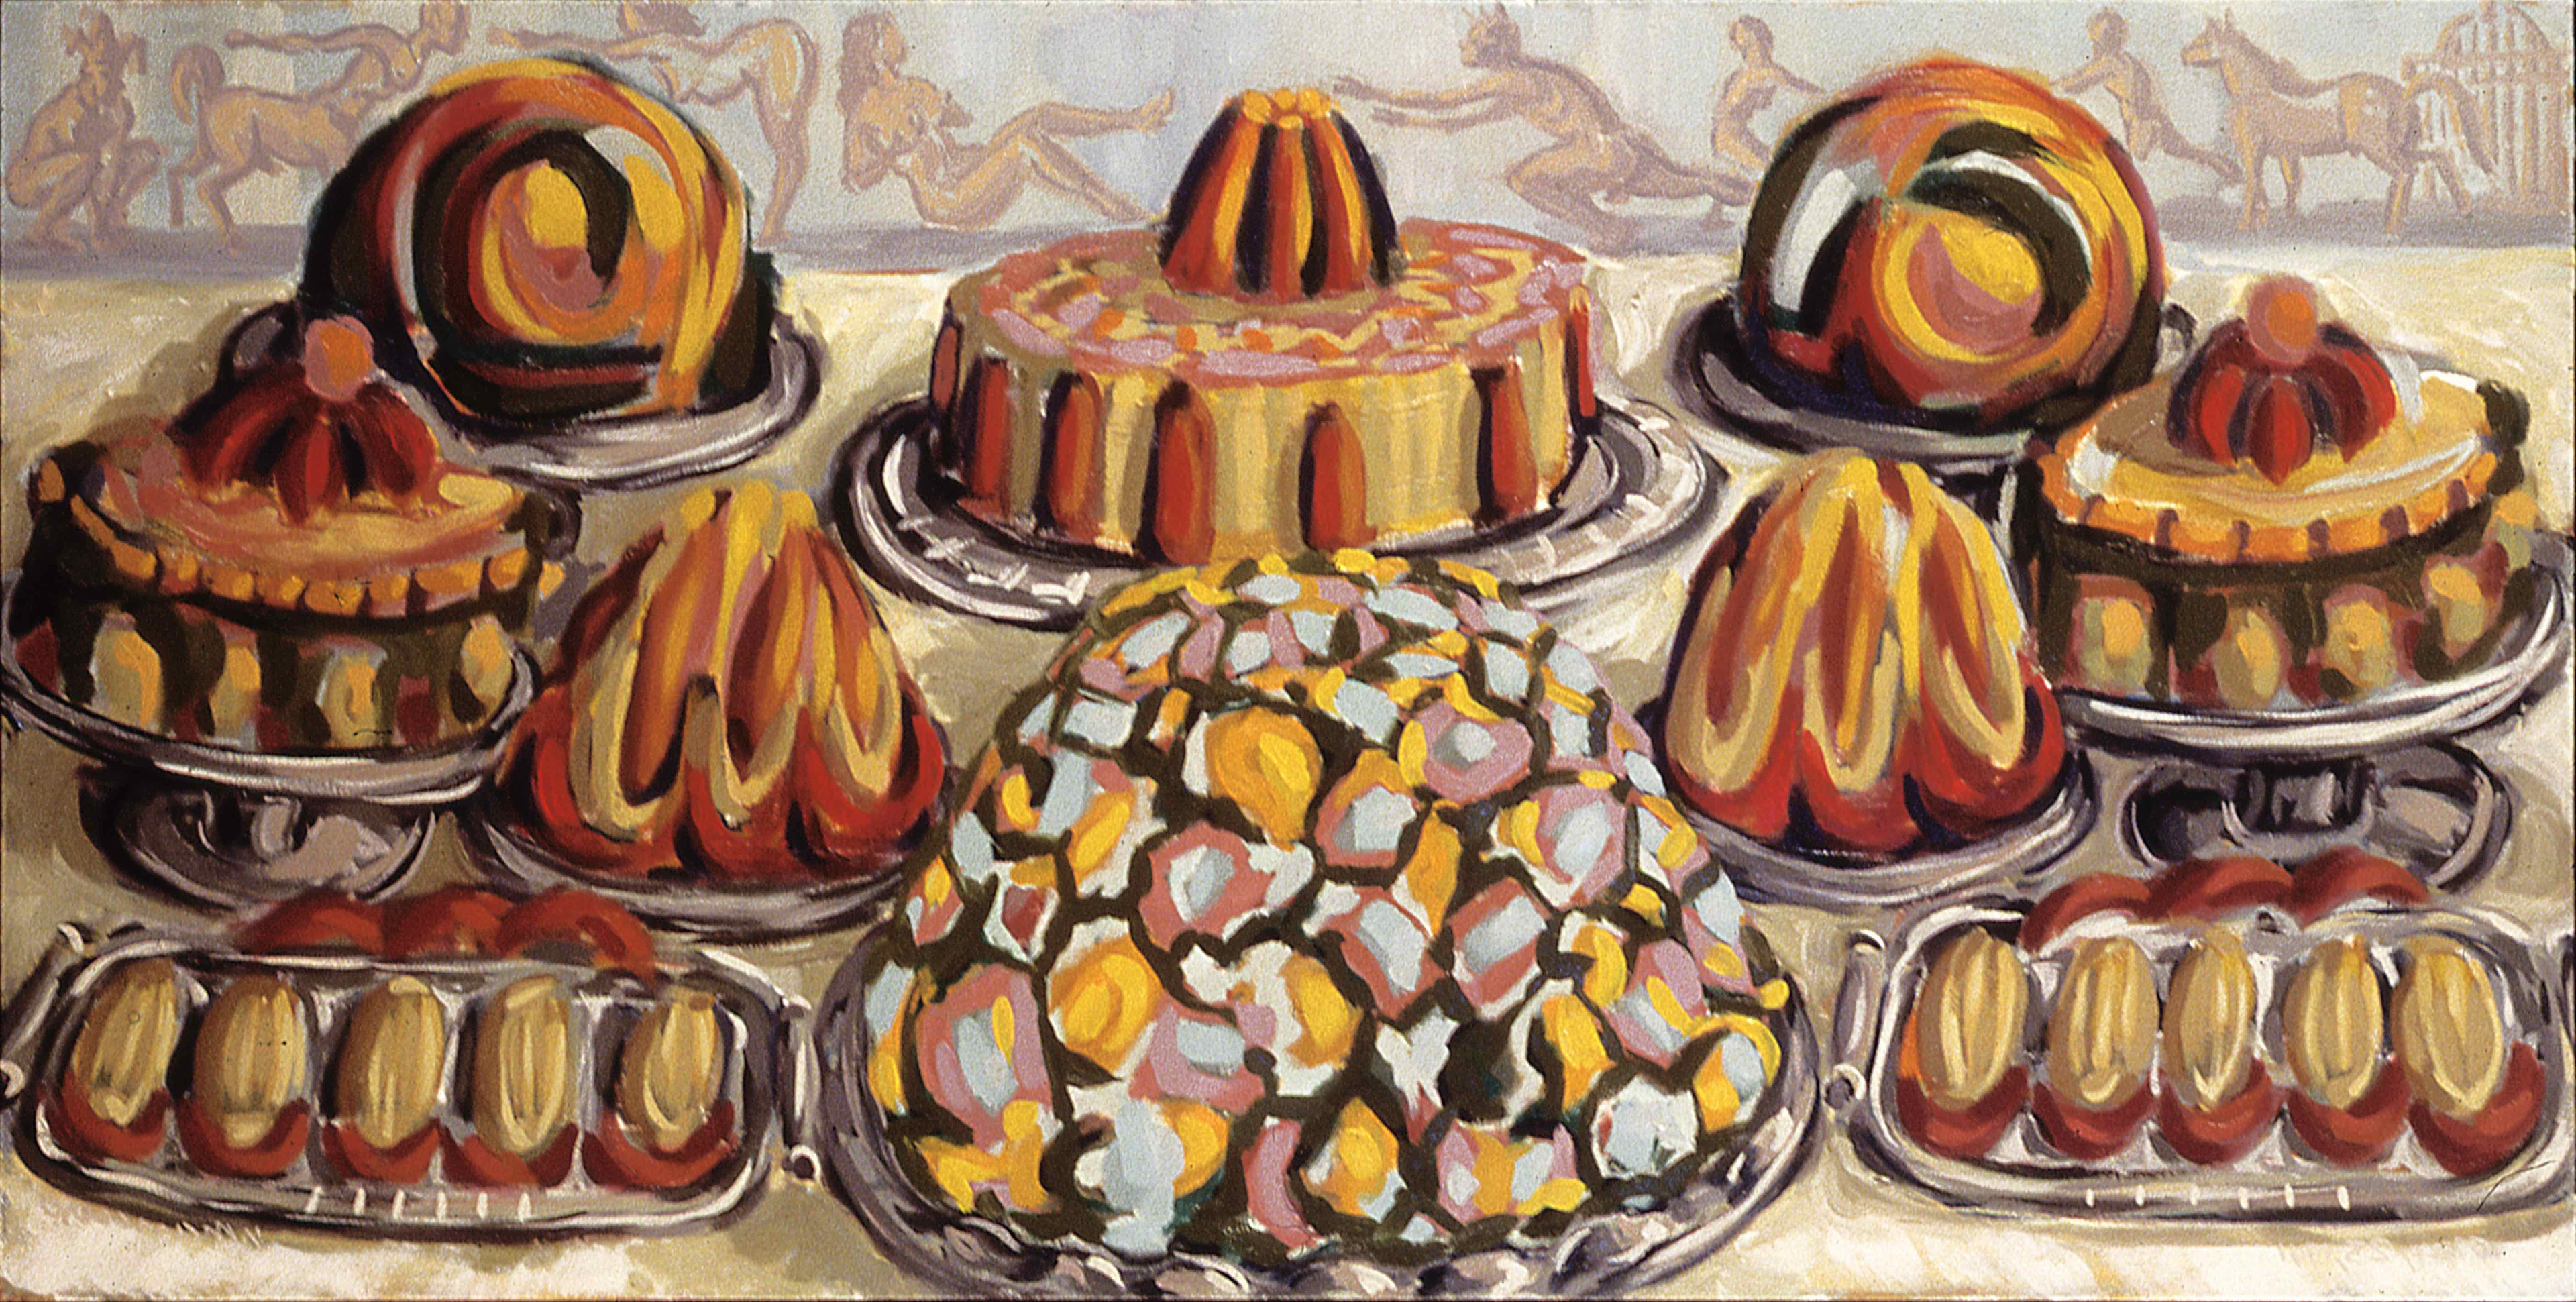 DESERT TABLE, painted by Vince Mancuso in 1992, oil on canvas, 6x3 feet, private collections.